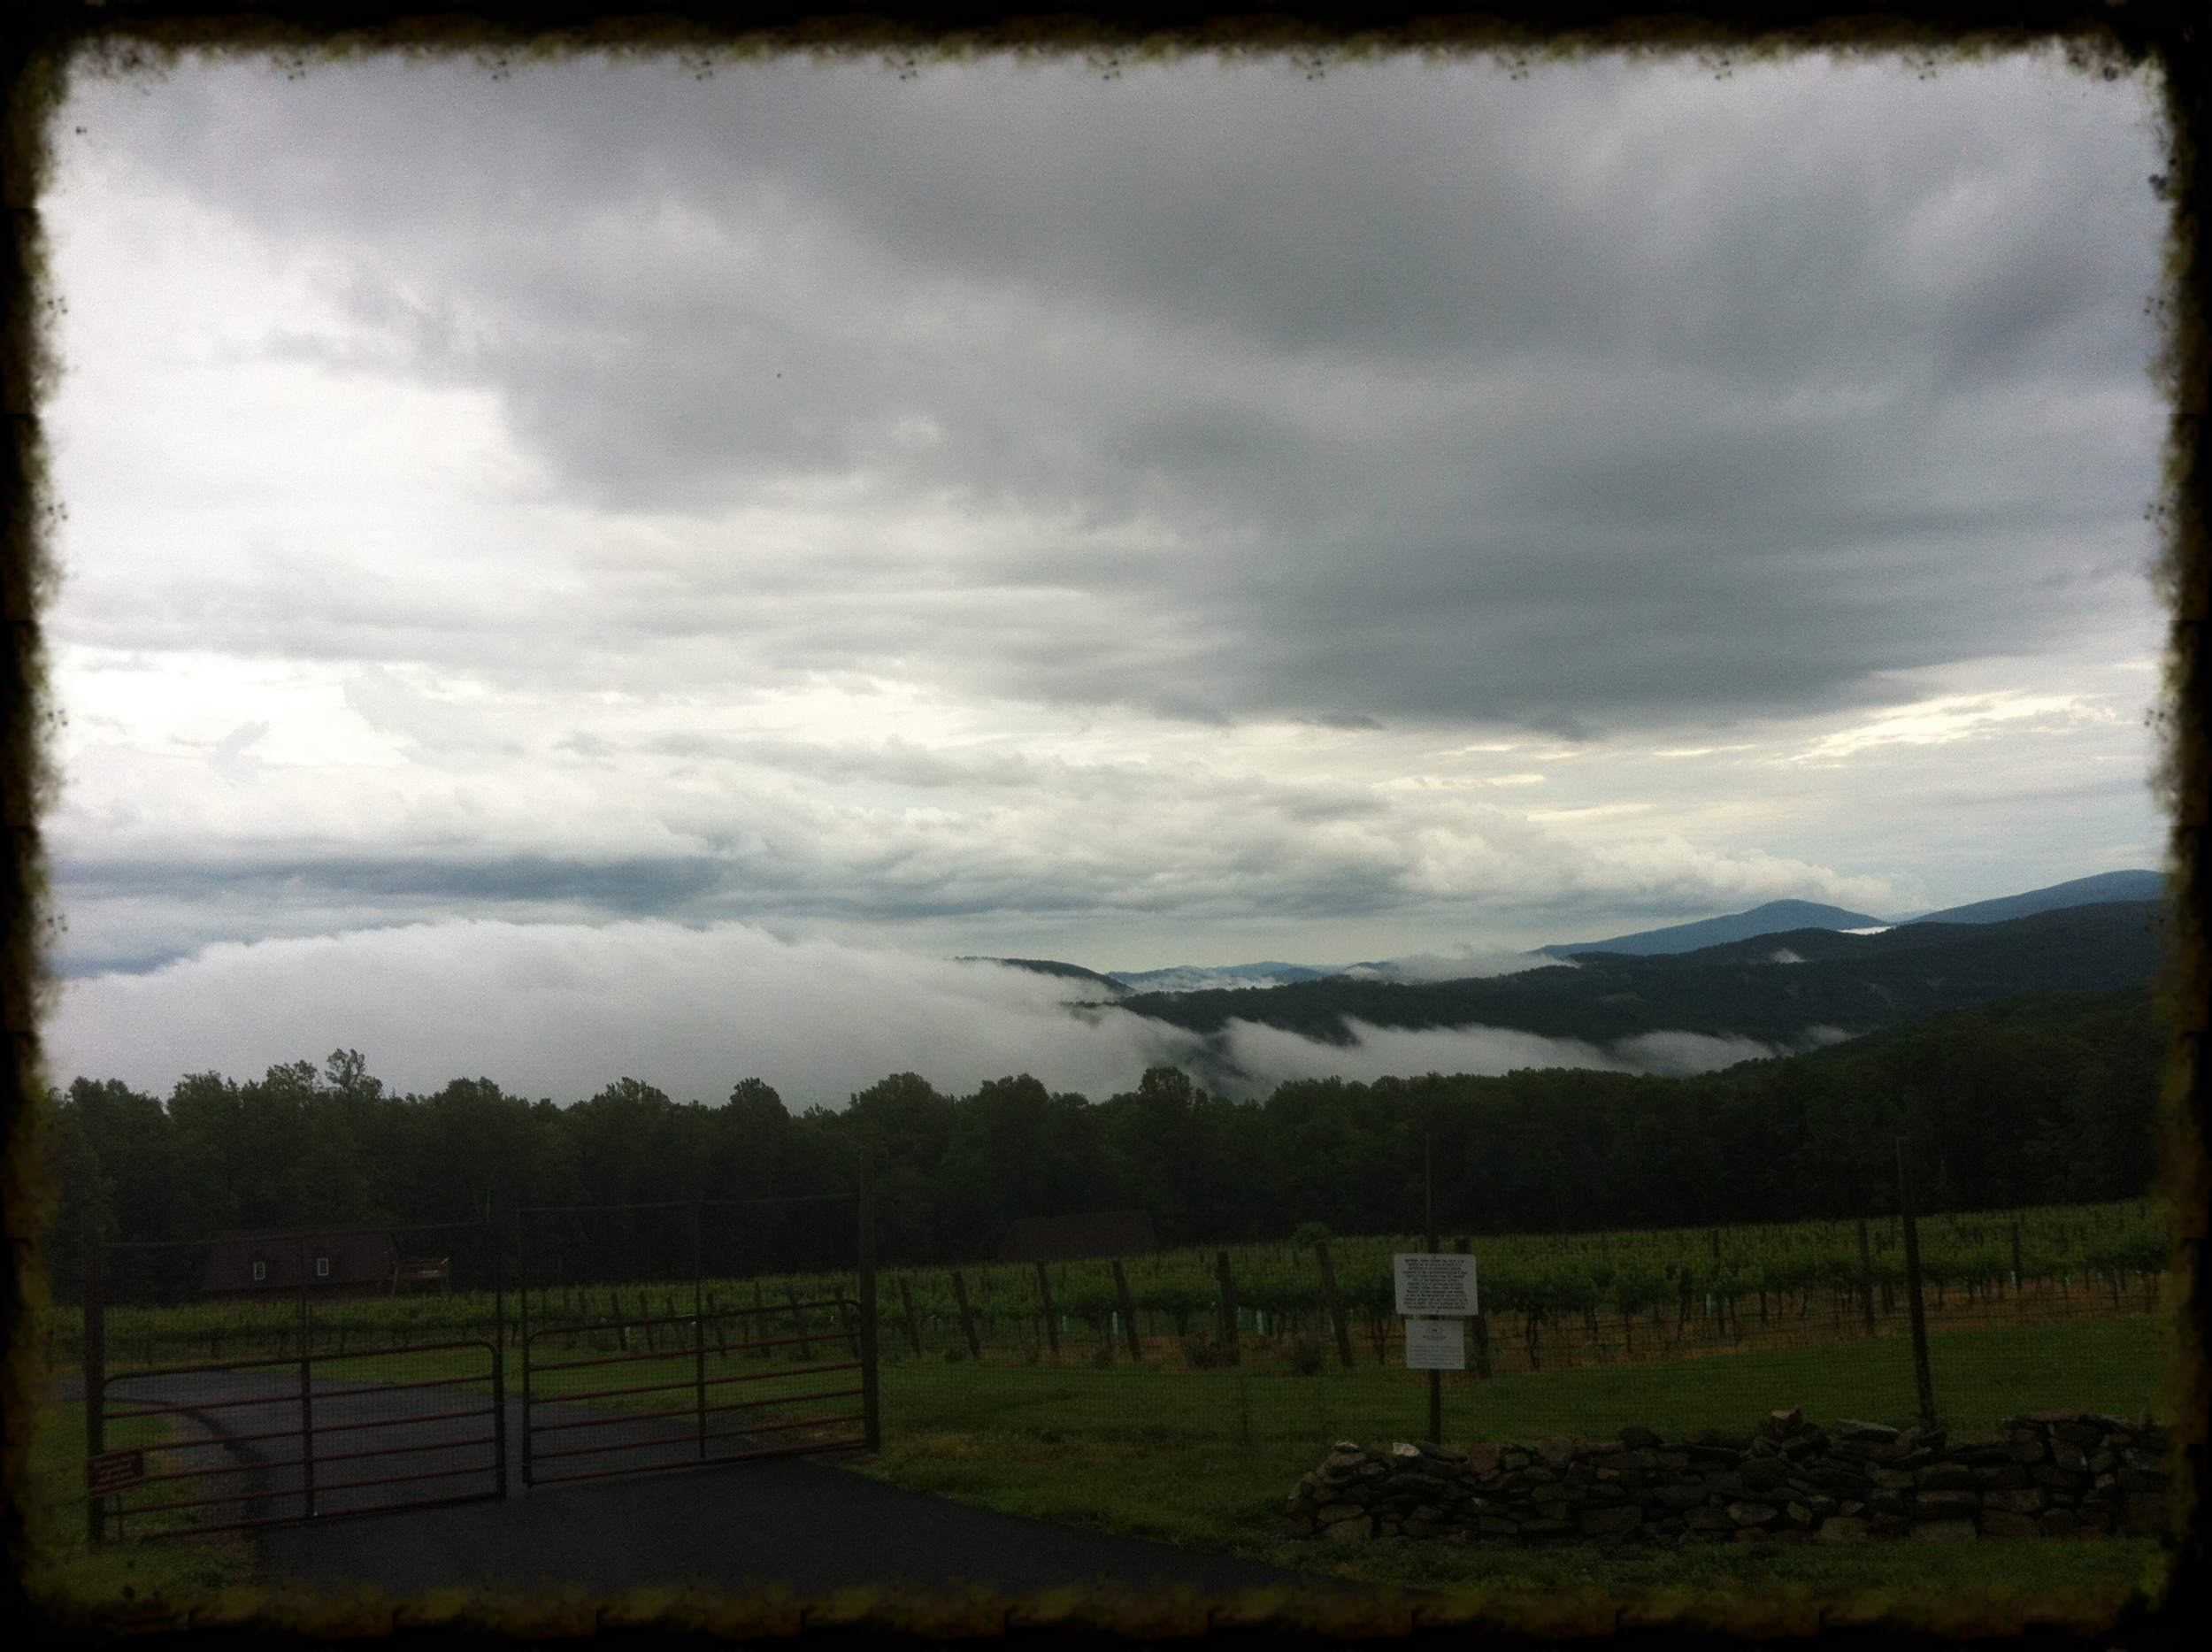 Looking South From Blue Mountain. Linden, VA -Garth Woodruff